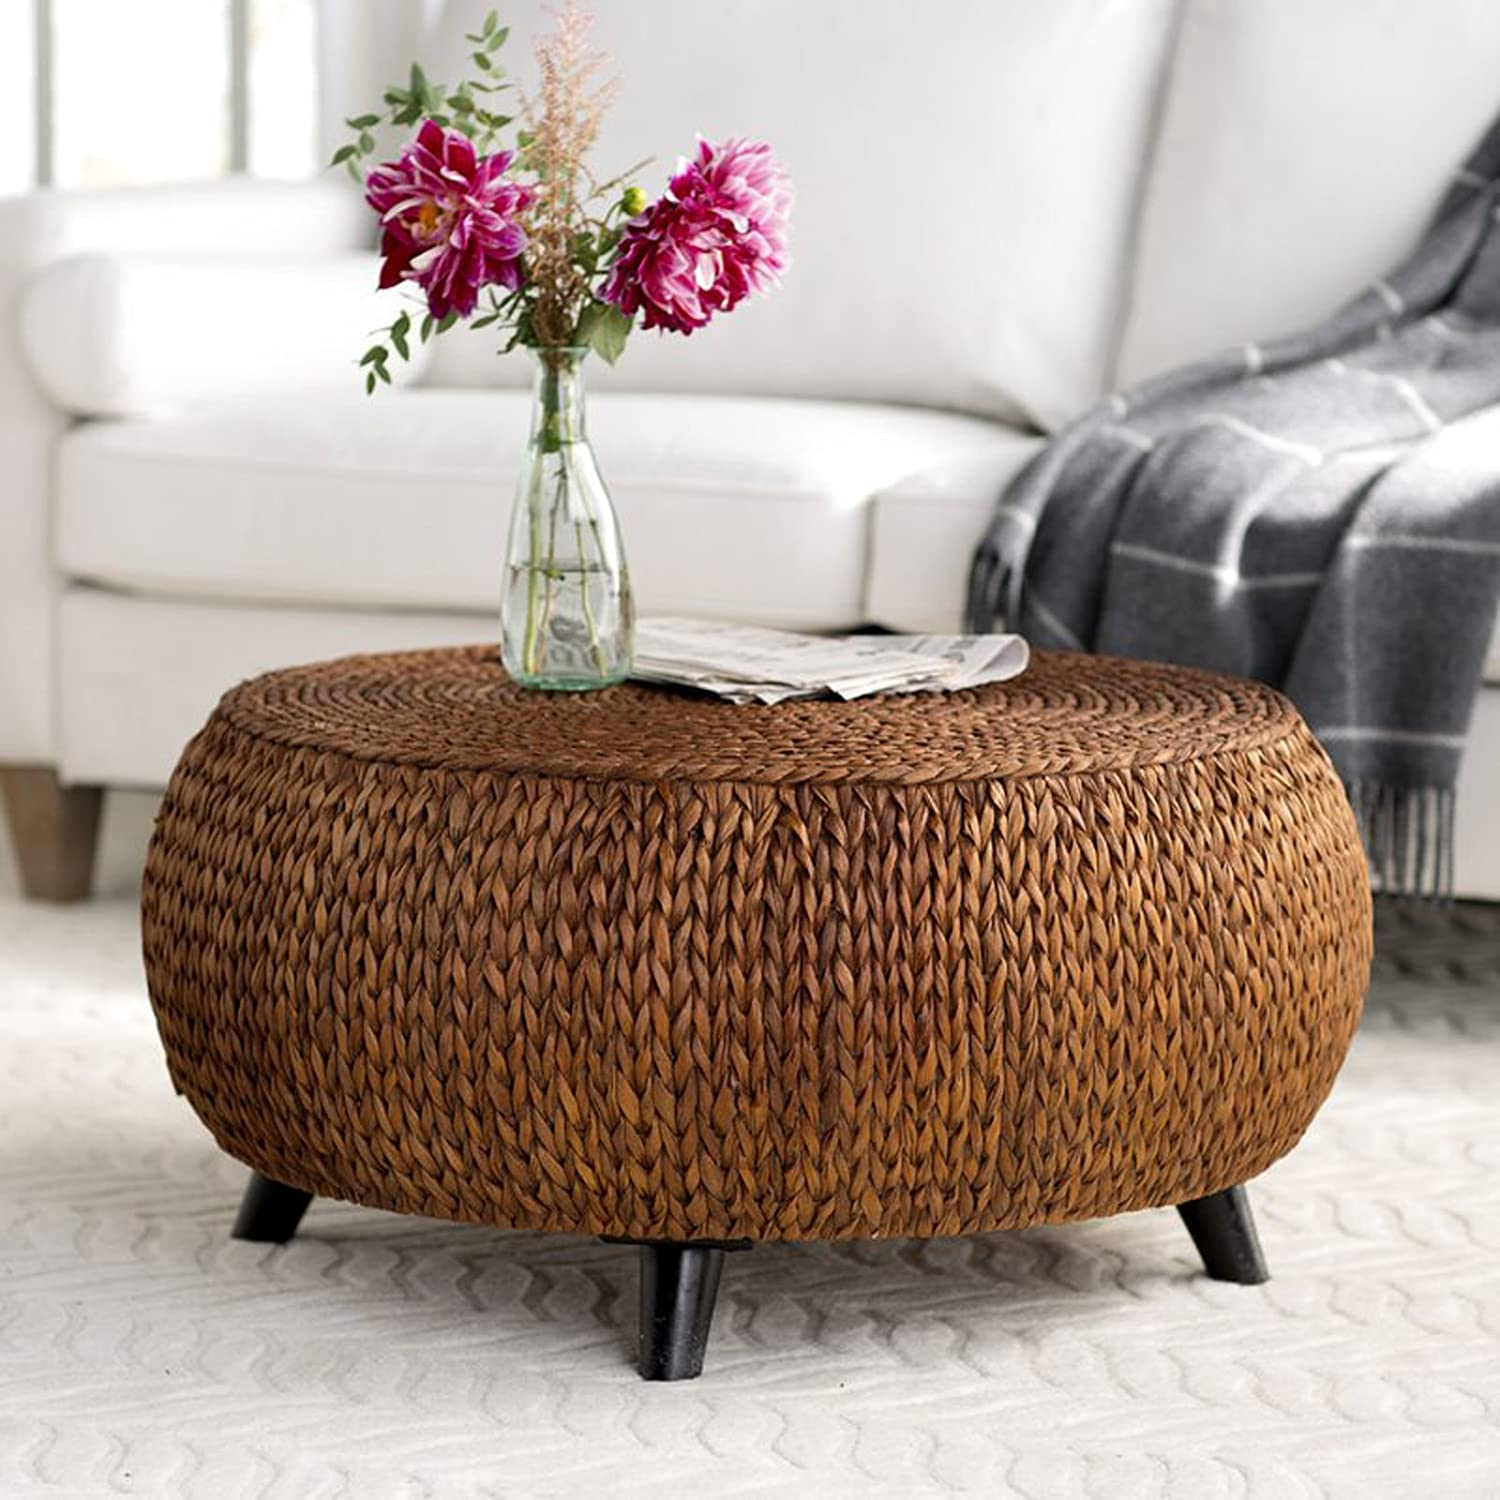 bfc52a195308 Amazon.com  Round Coffee Table - Woven Banana Leaf Accent Cocktail Table -  Drum Shaped Design (Gold Patina)  Kitchen   Dining